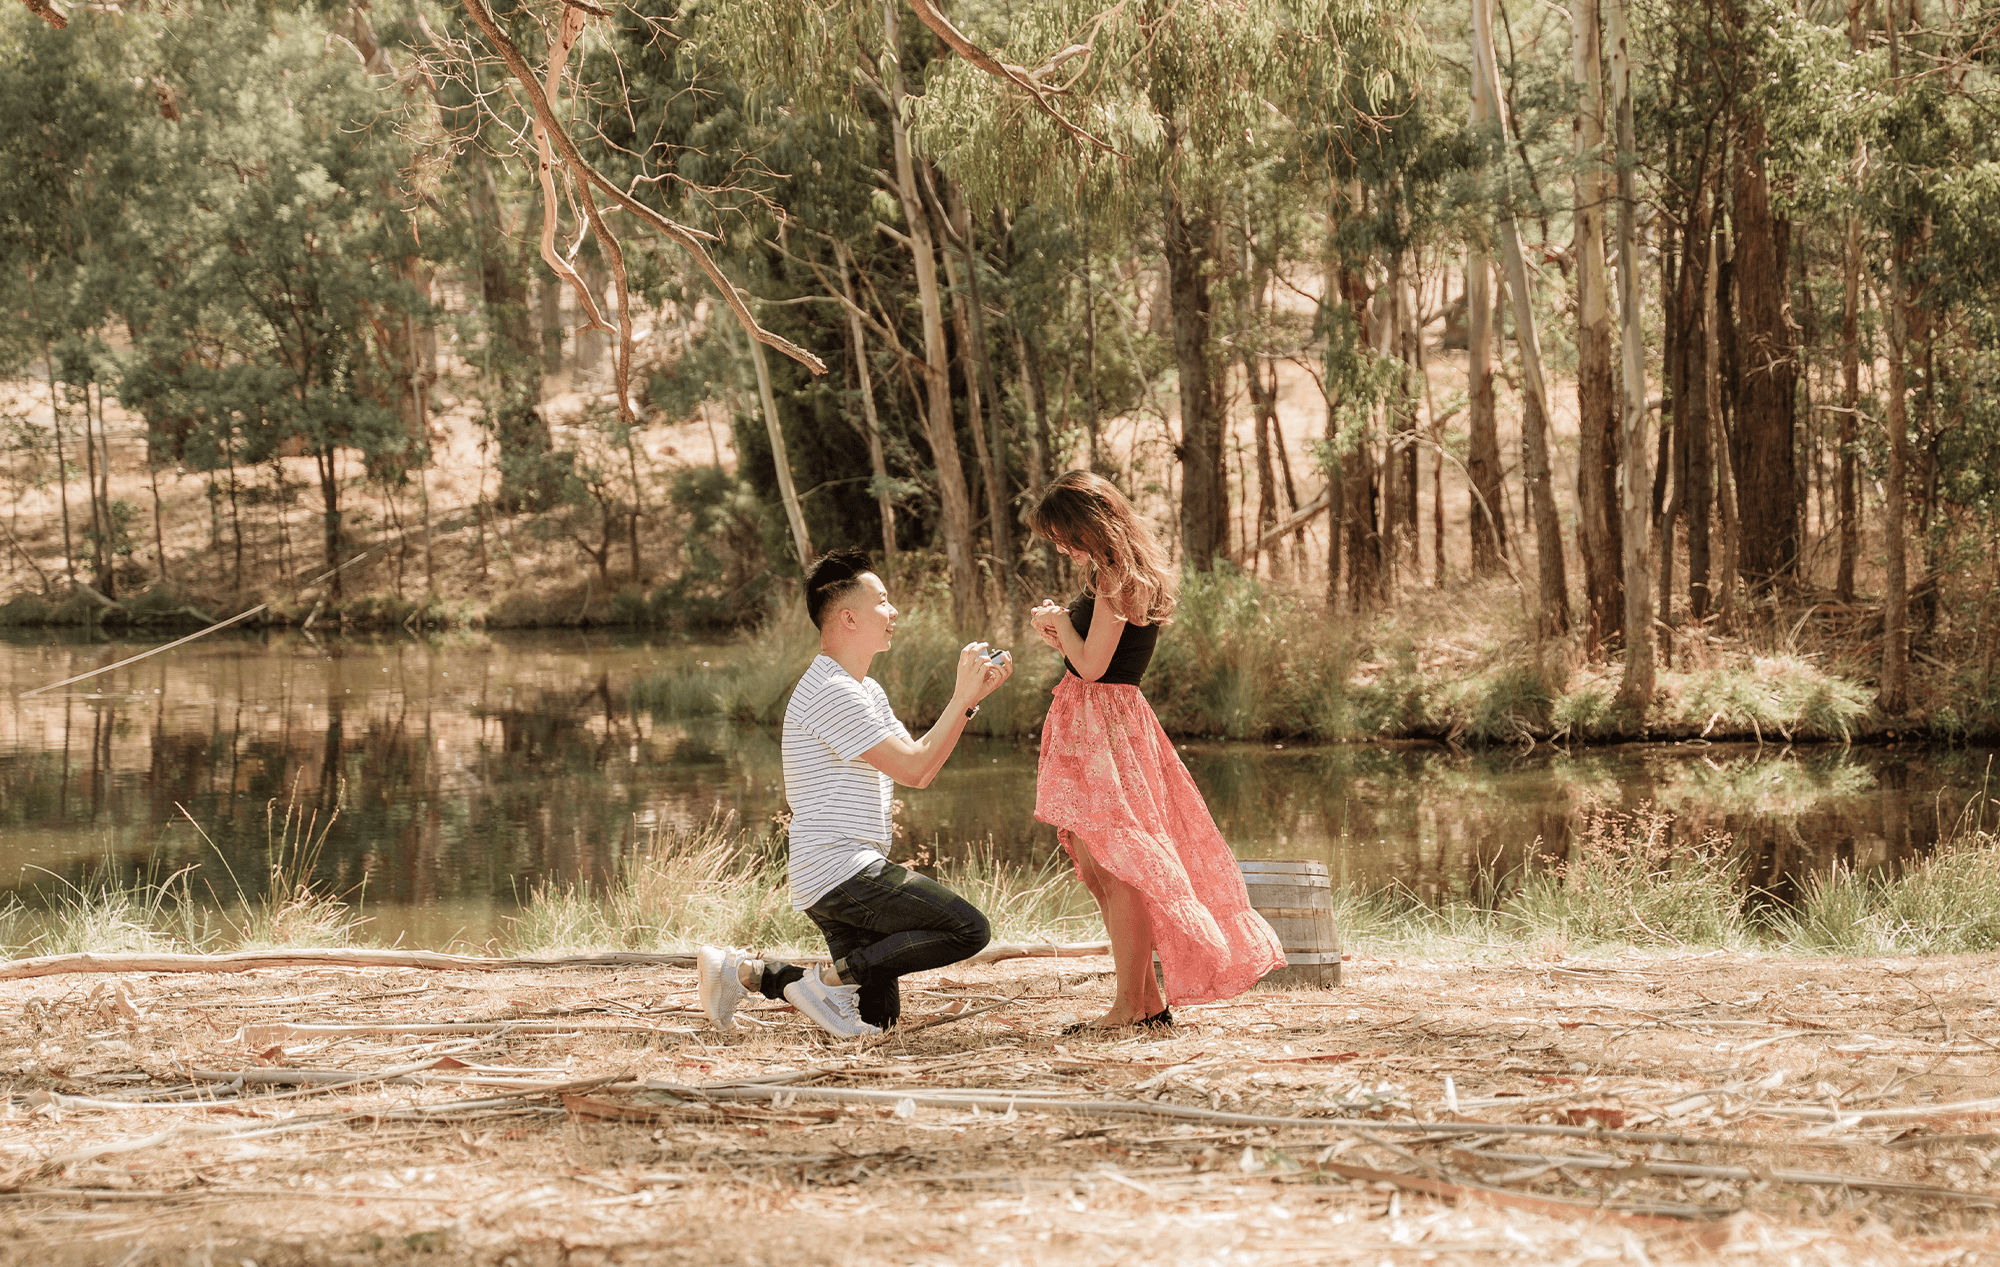 Mystery Picnic Proposal     A day you'll remember forever, made mysteriously perfect.   Speak with a concierge